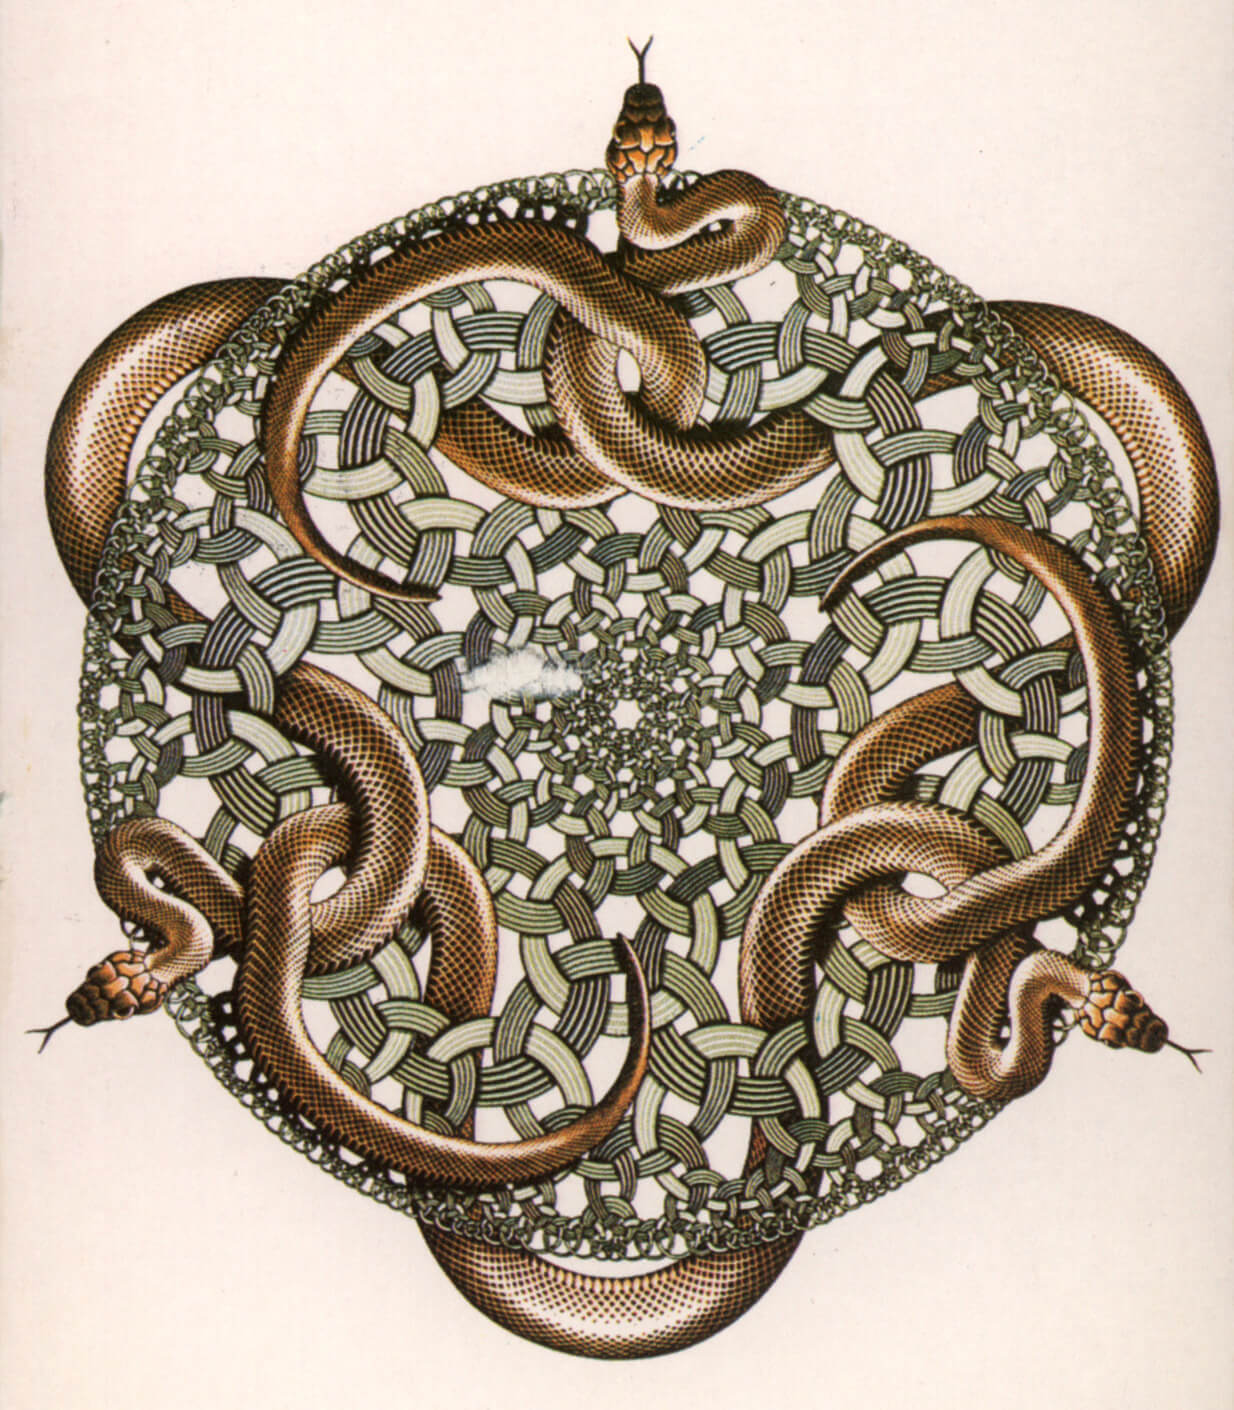 Hyperbolic geometry translated in the 'Snakes' woodcut | Maurits Cornelis Escher | STIRworld